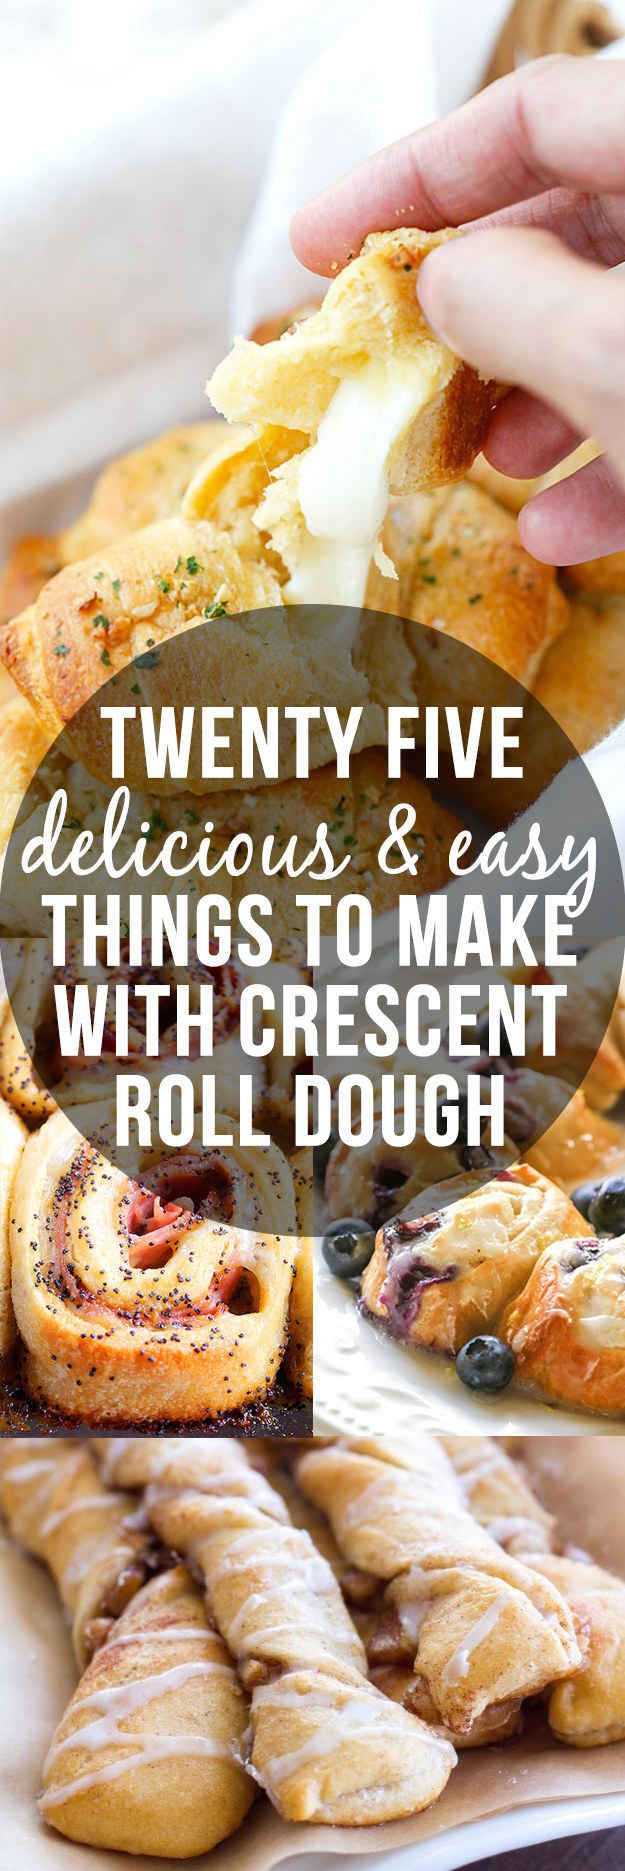 25 Mind-Blowing Ways To Use Crescent Roll Dough